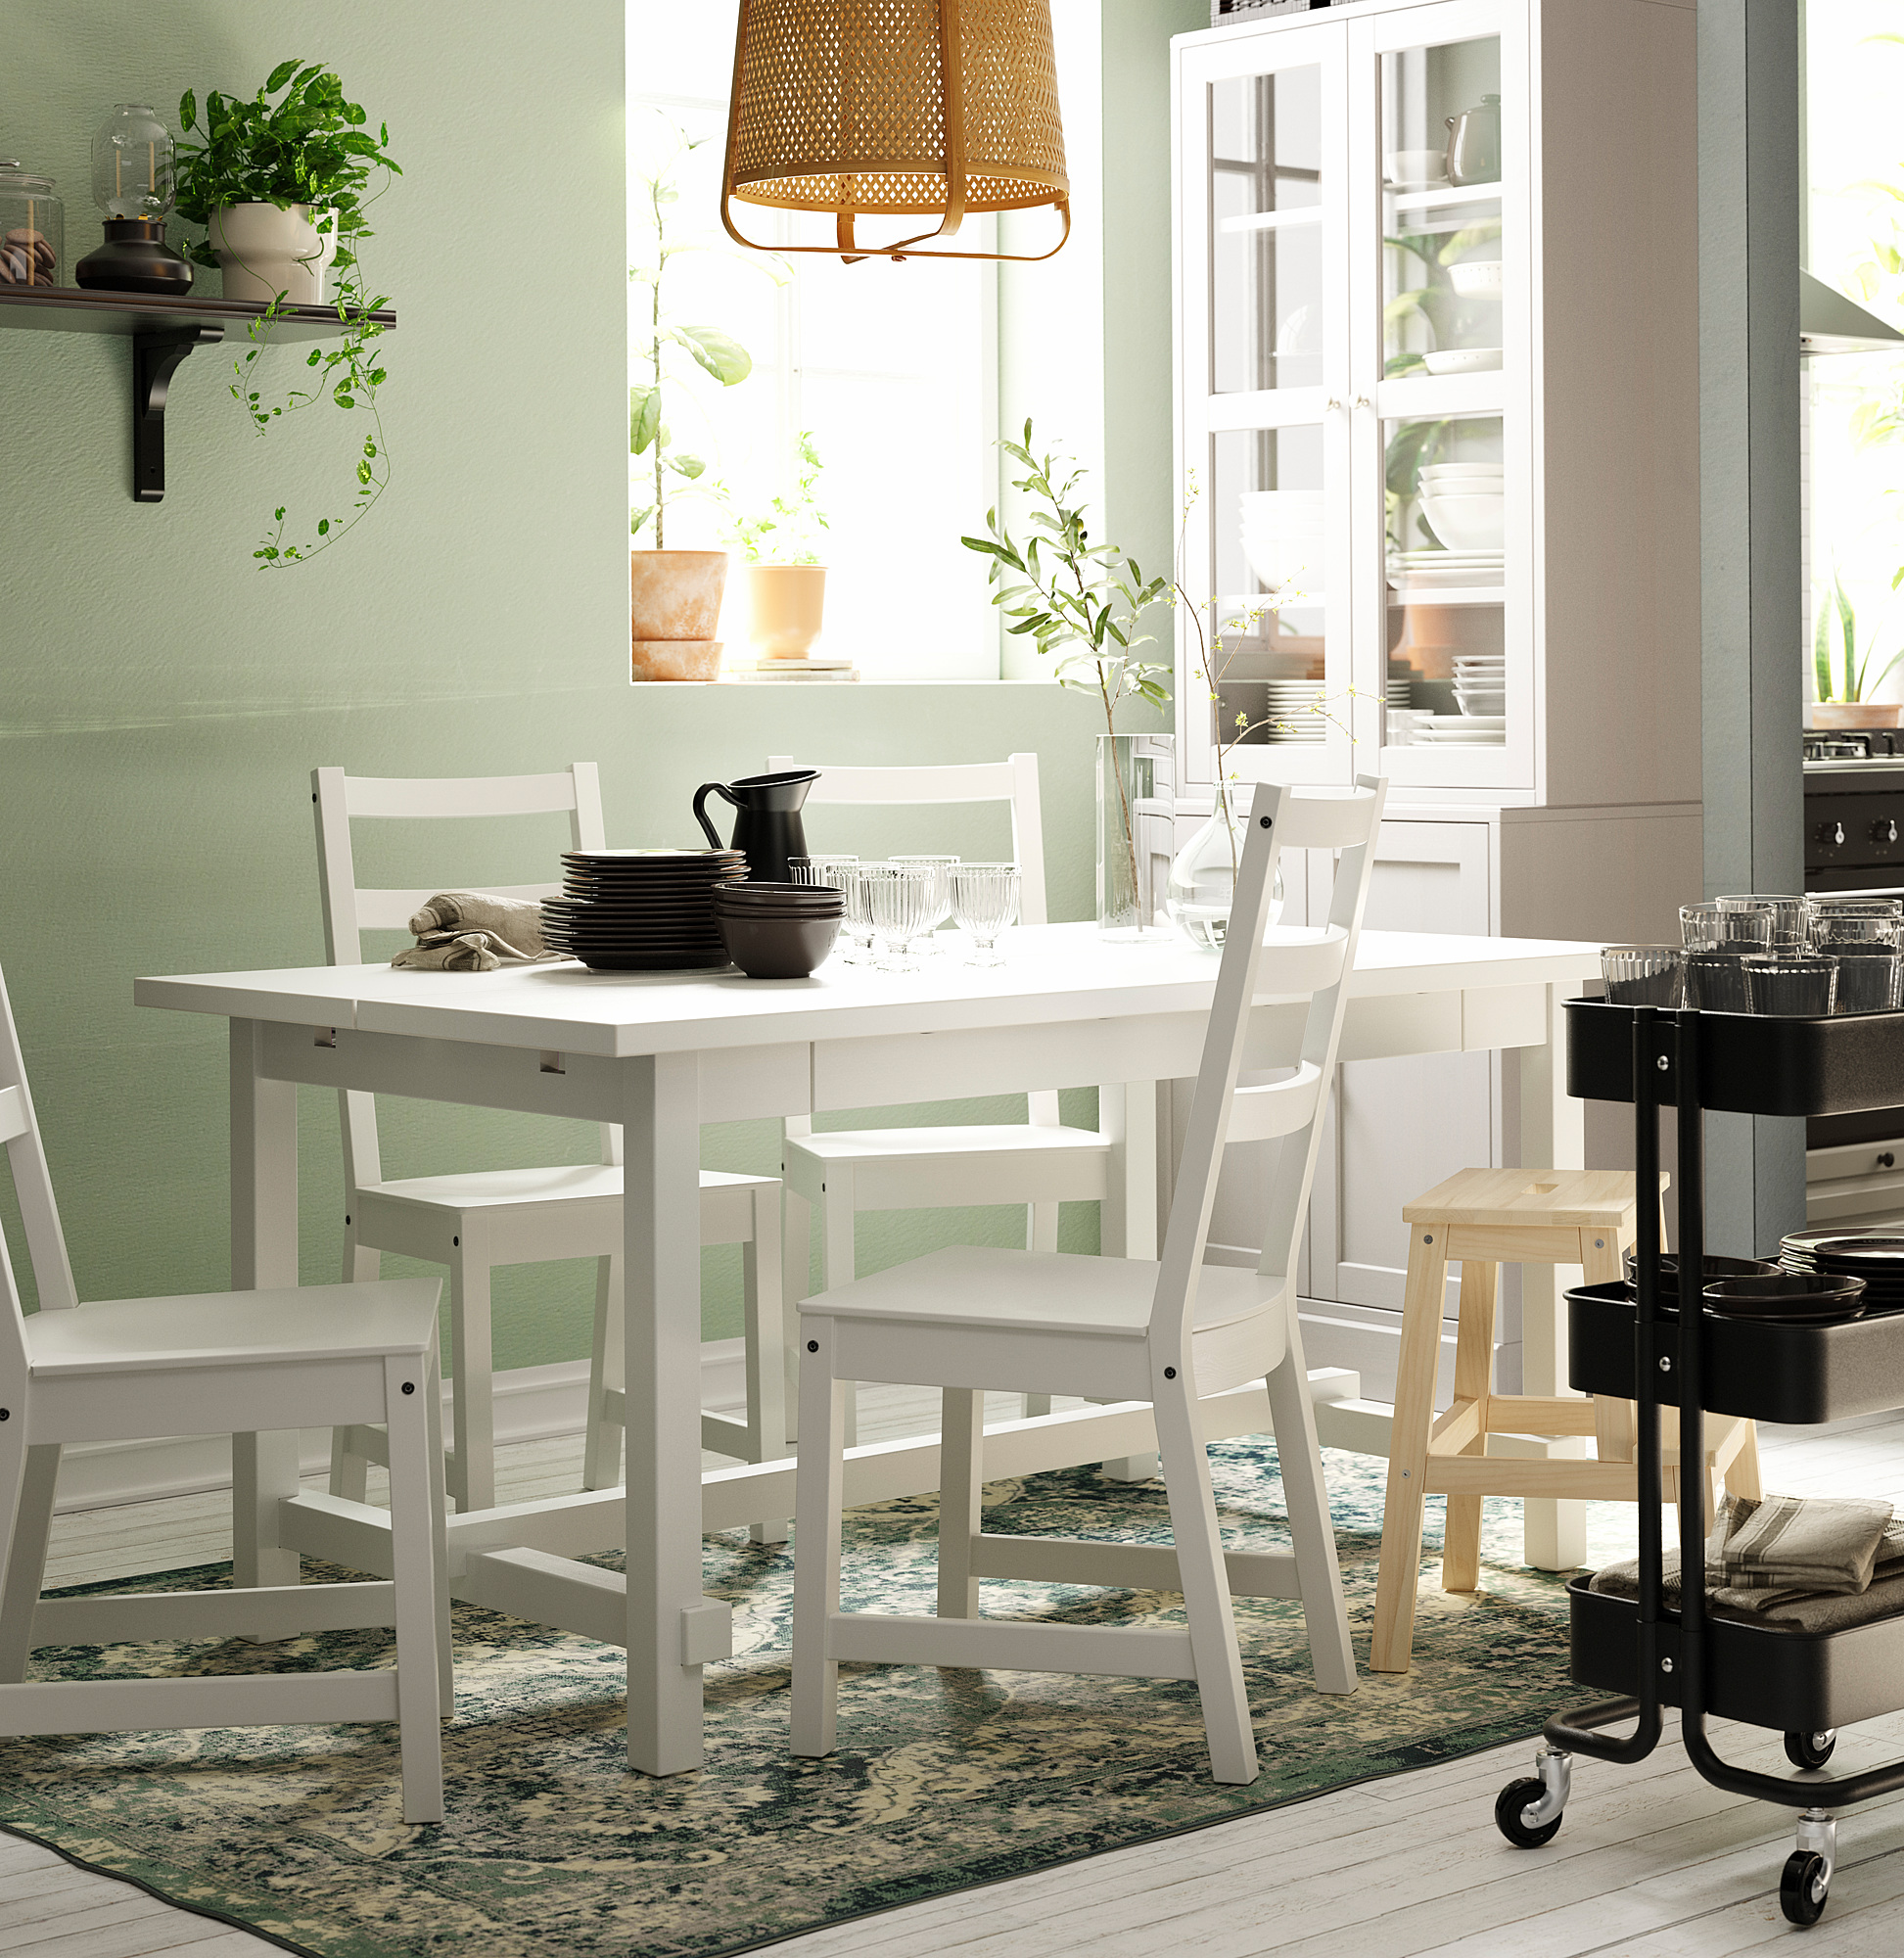 Nordviken Extendable Table White Ikea Indonesia